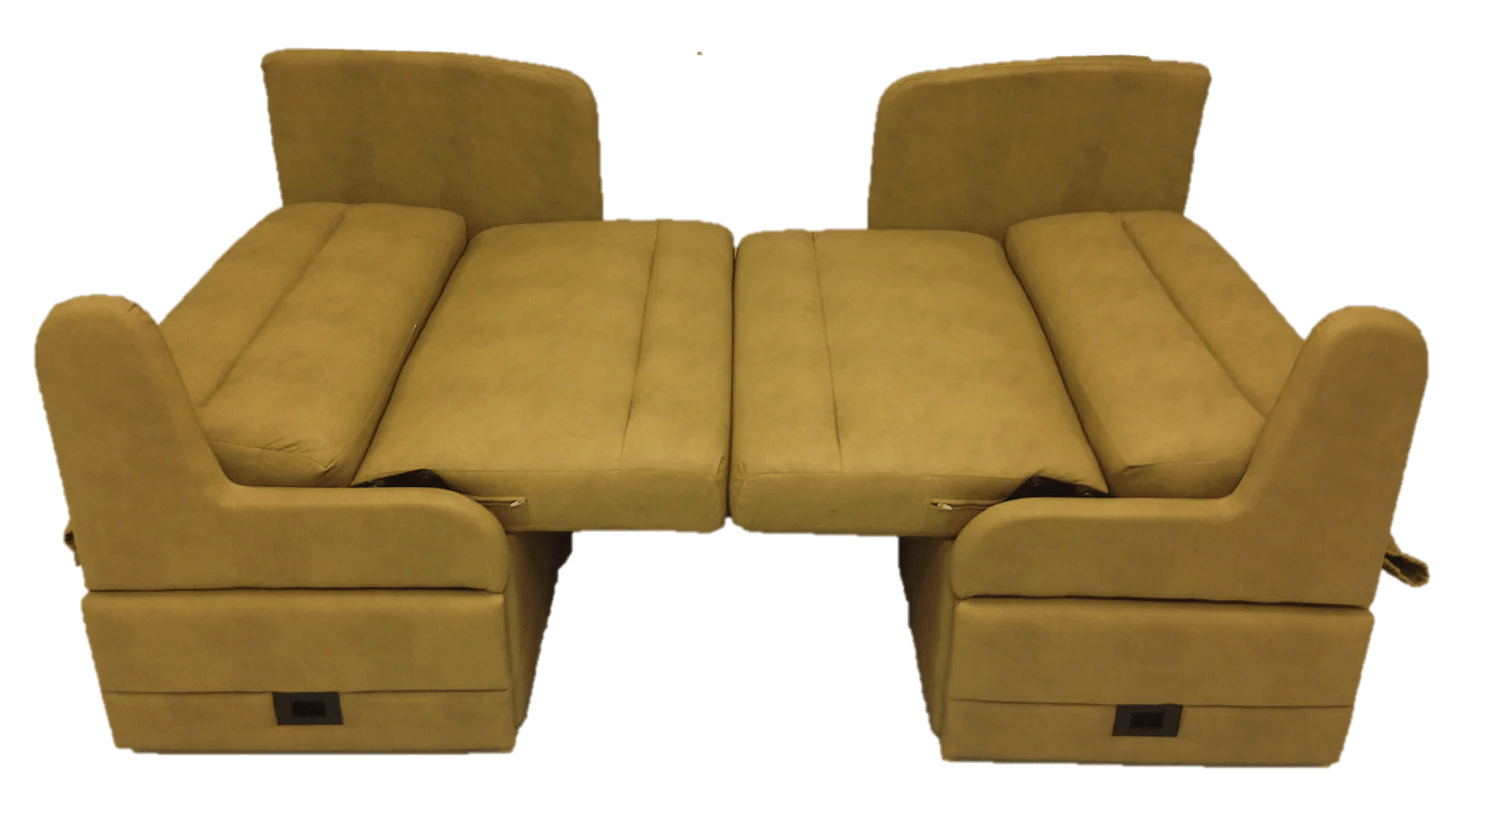 lambright comfort chairs the stadium chair lazy relax r lite swivel wall hugger recliner